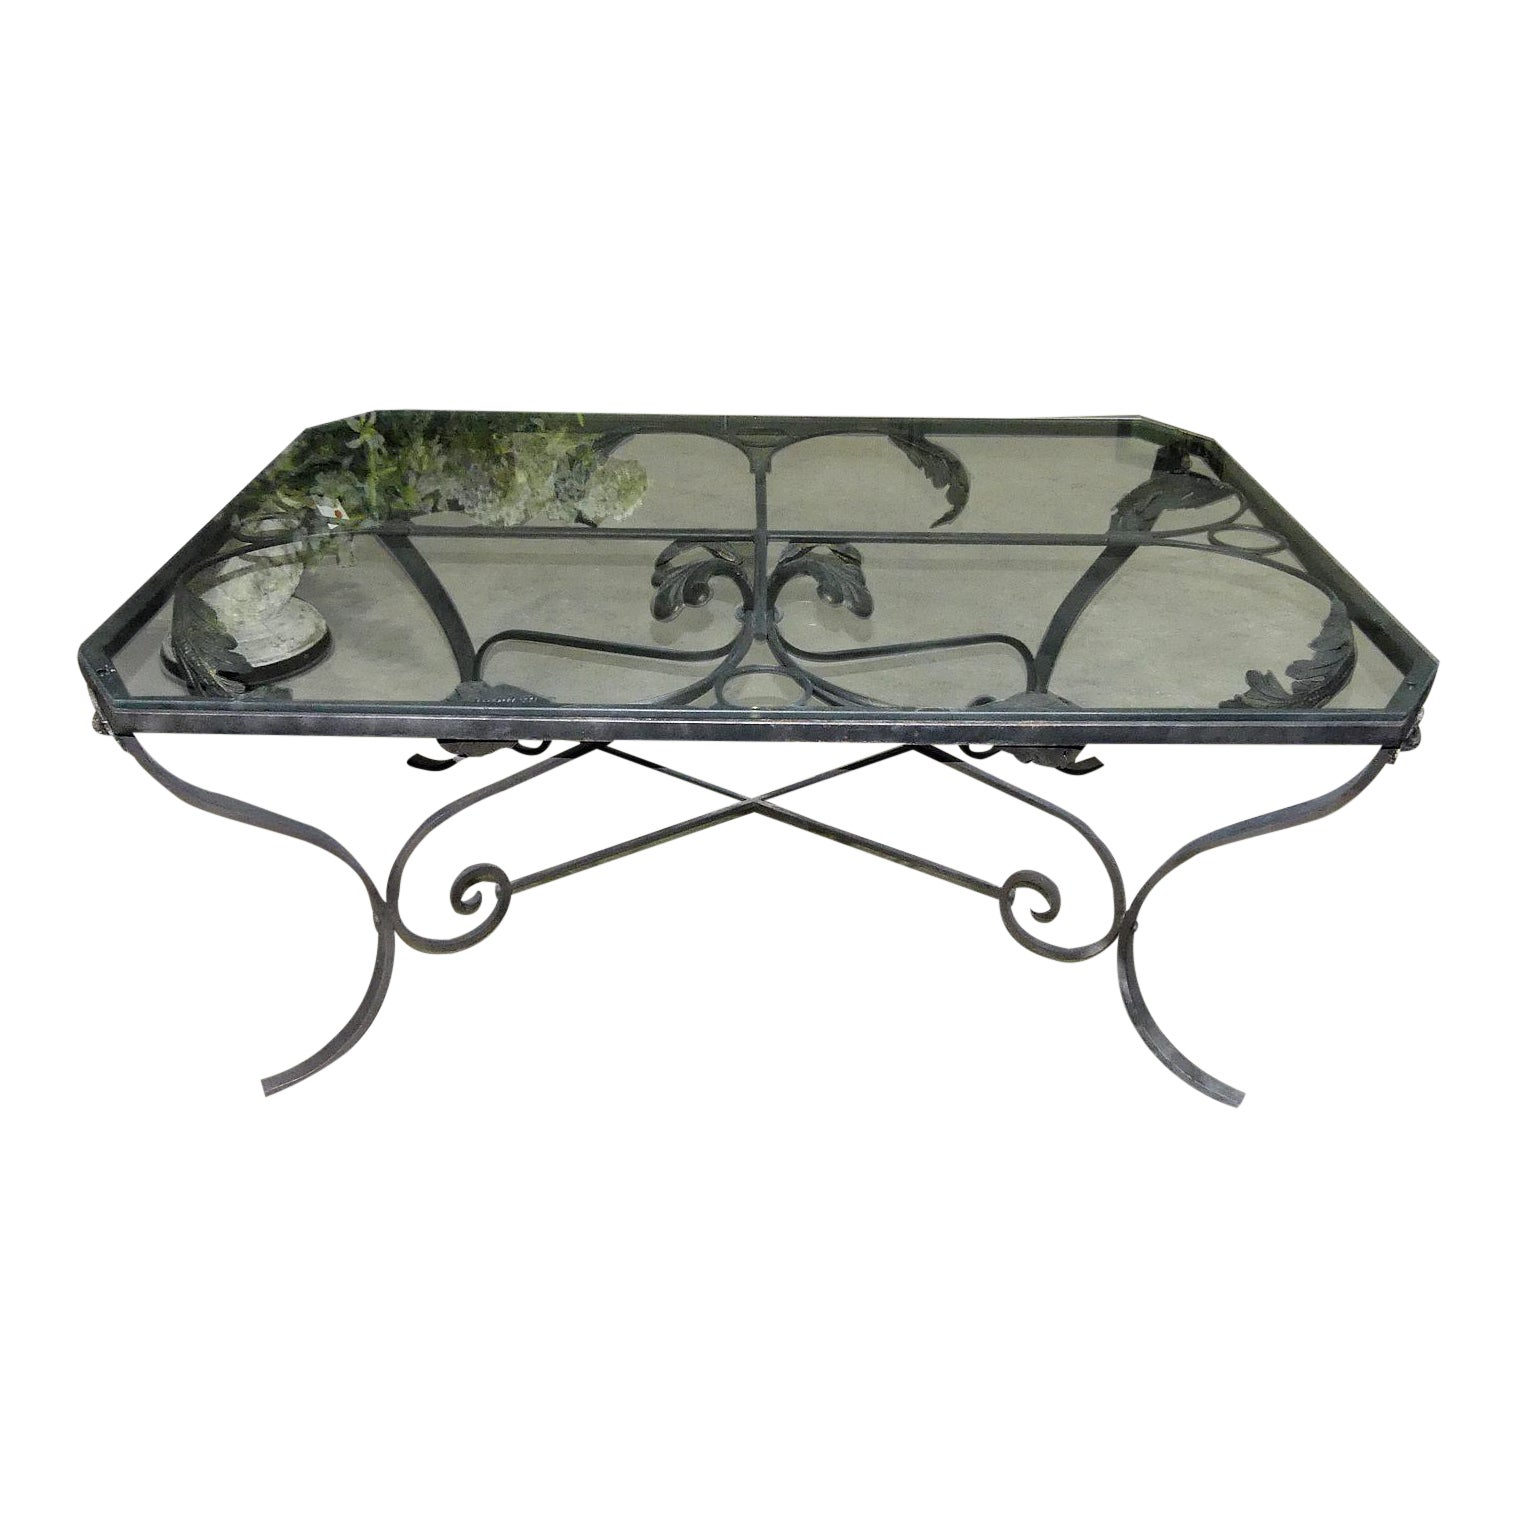 Beautiful Iron Cocktail or Coffee Table with Glass Top